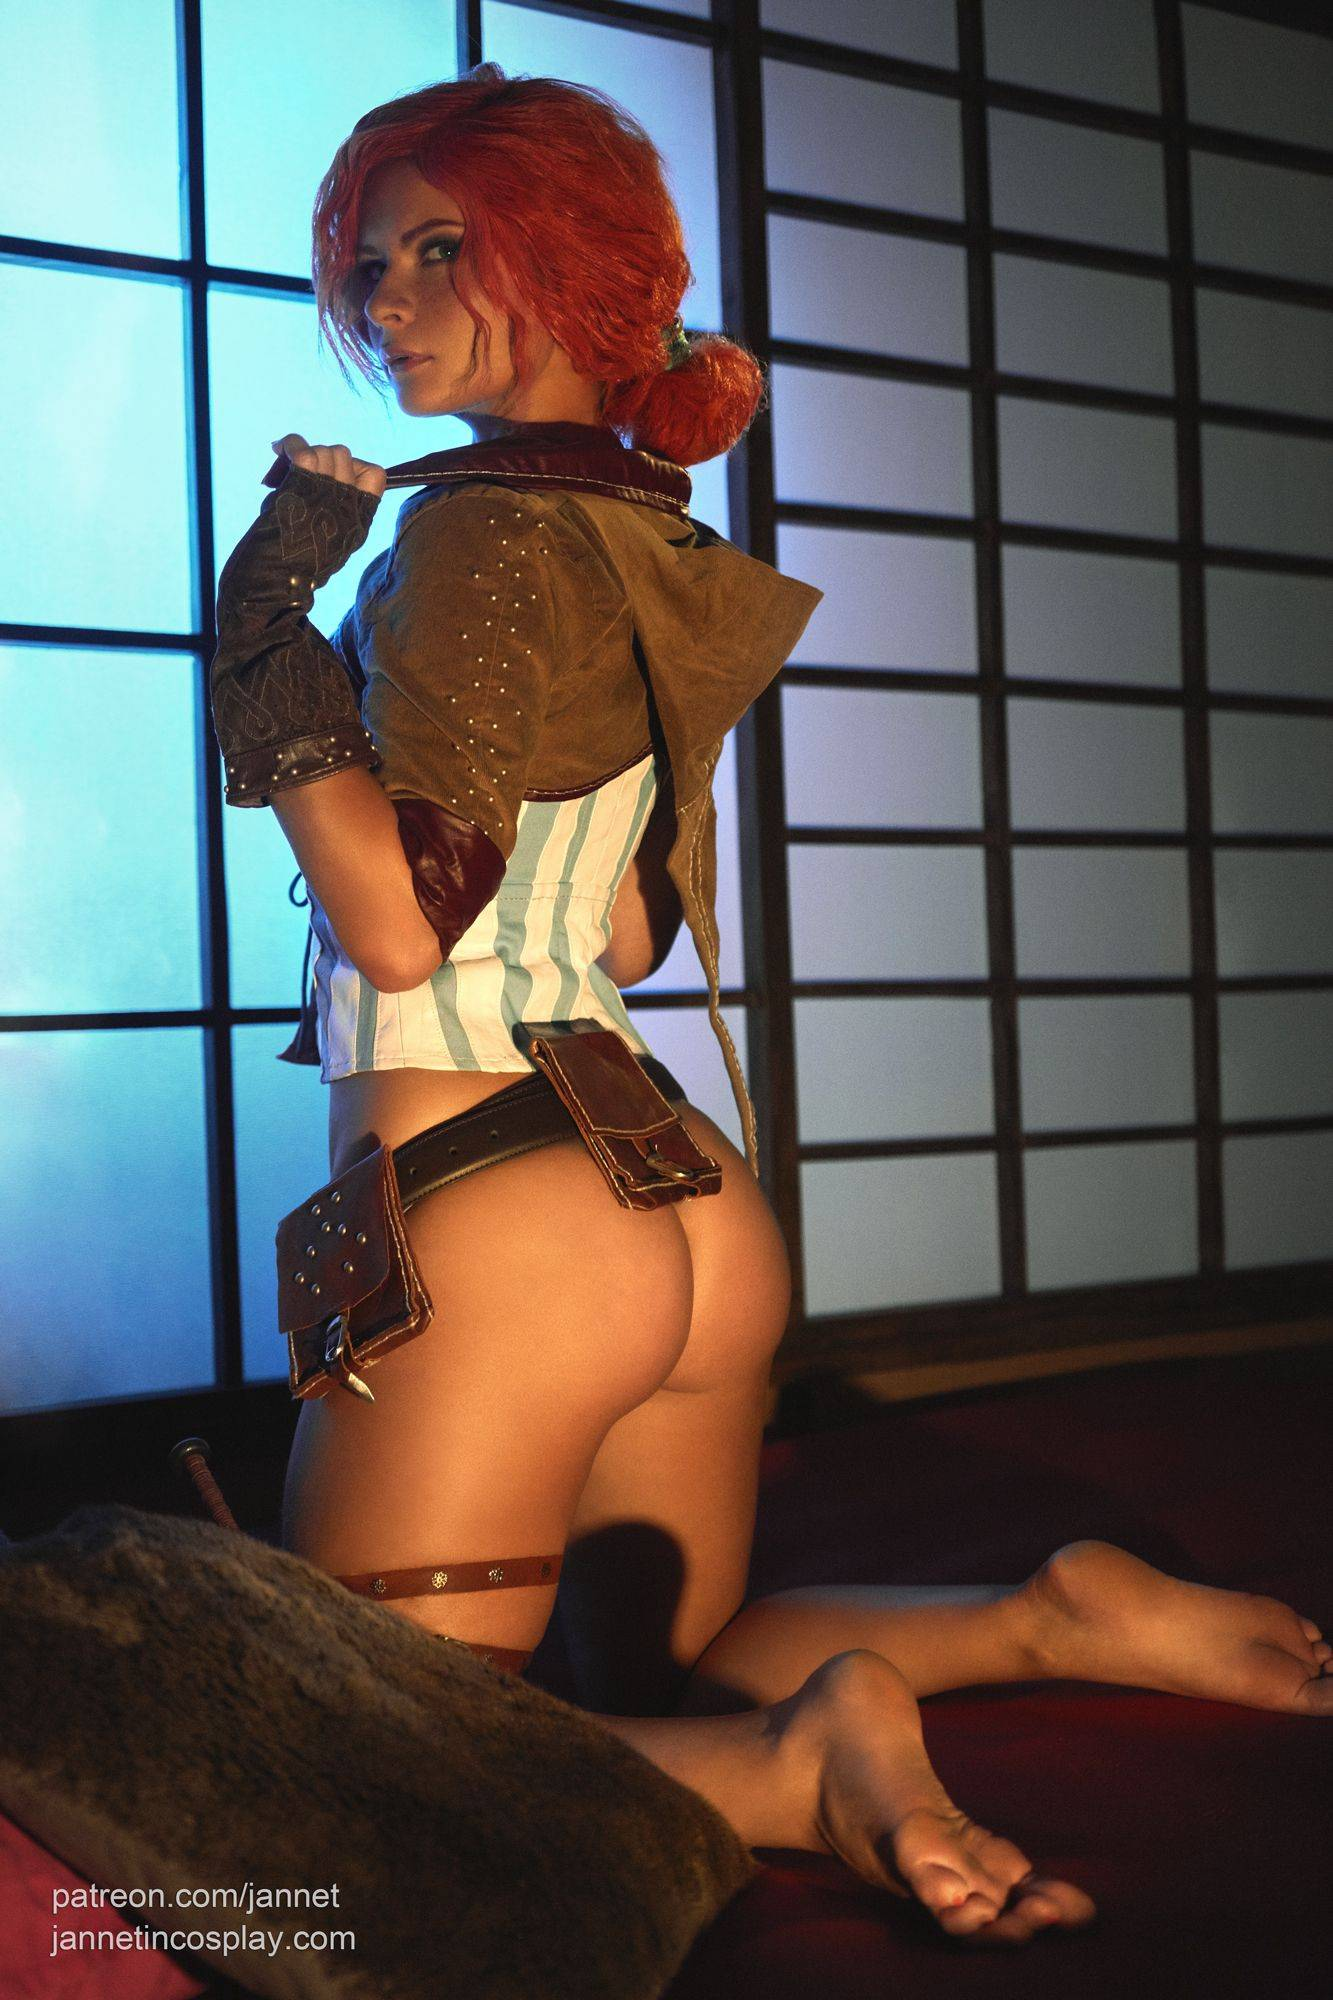 Merigold cosplay triss nude The Witcher